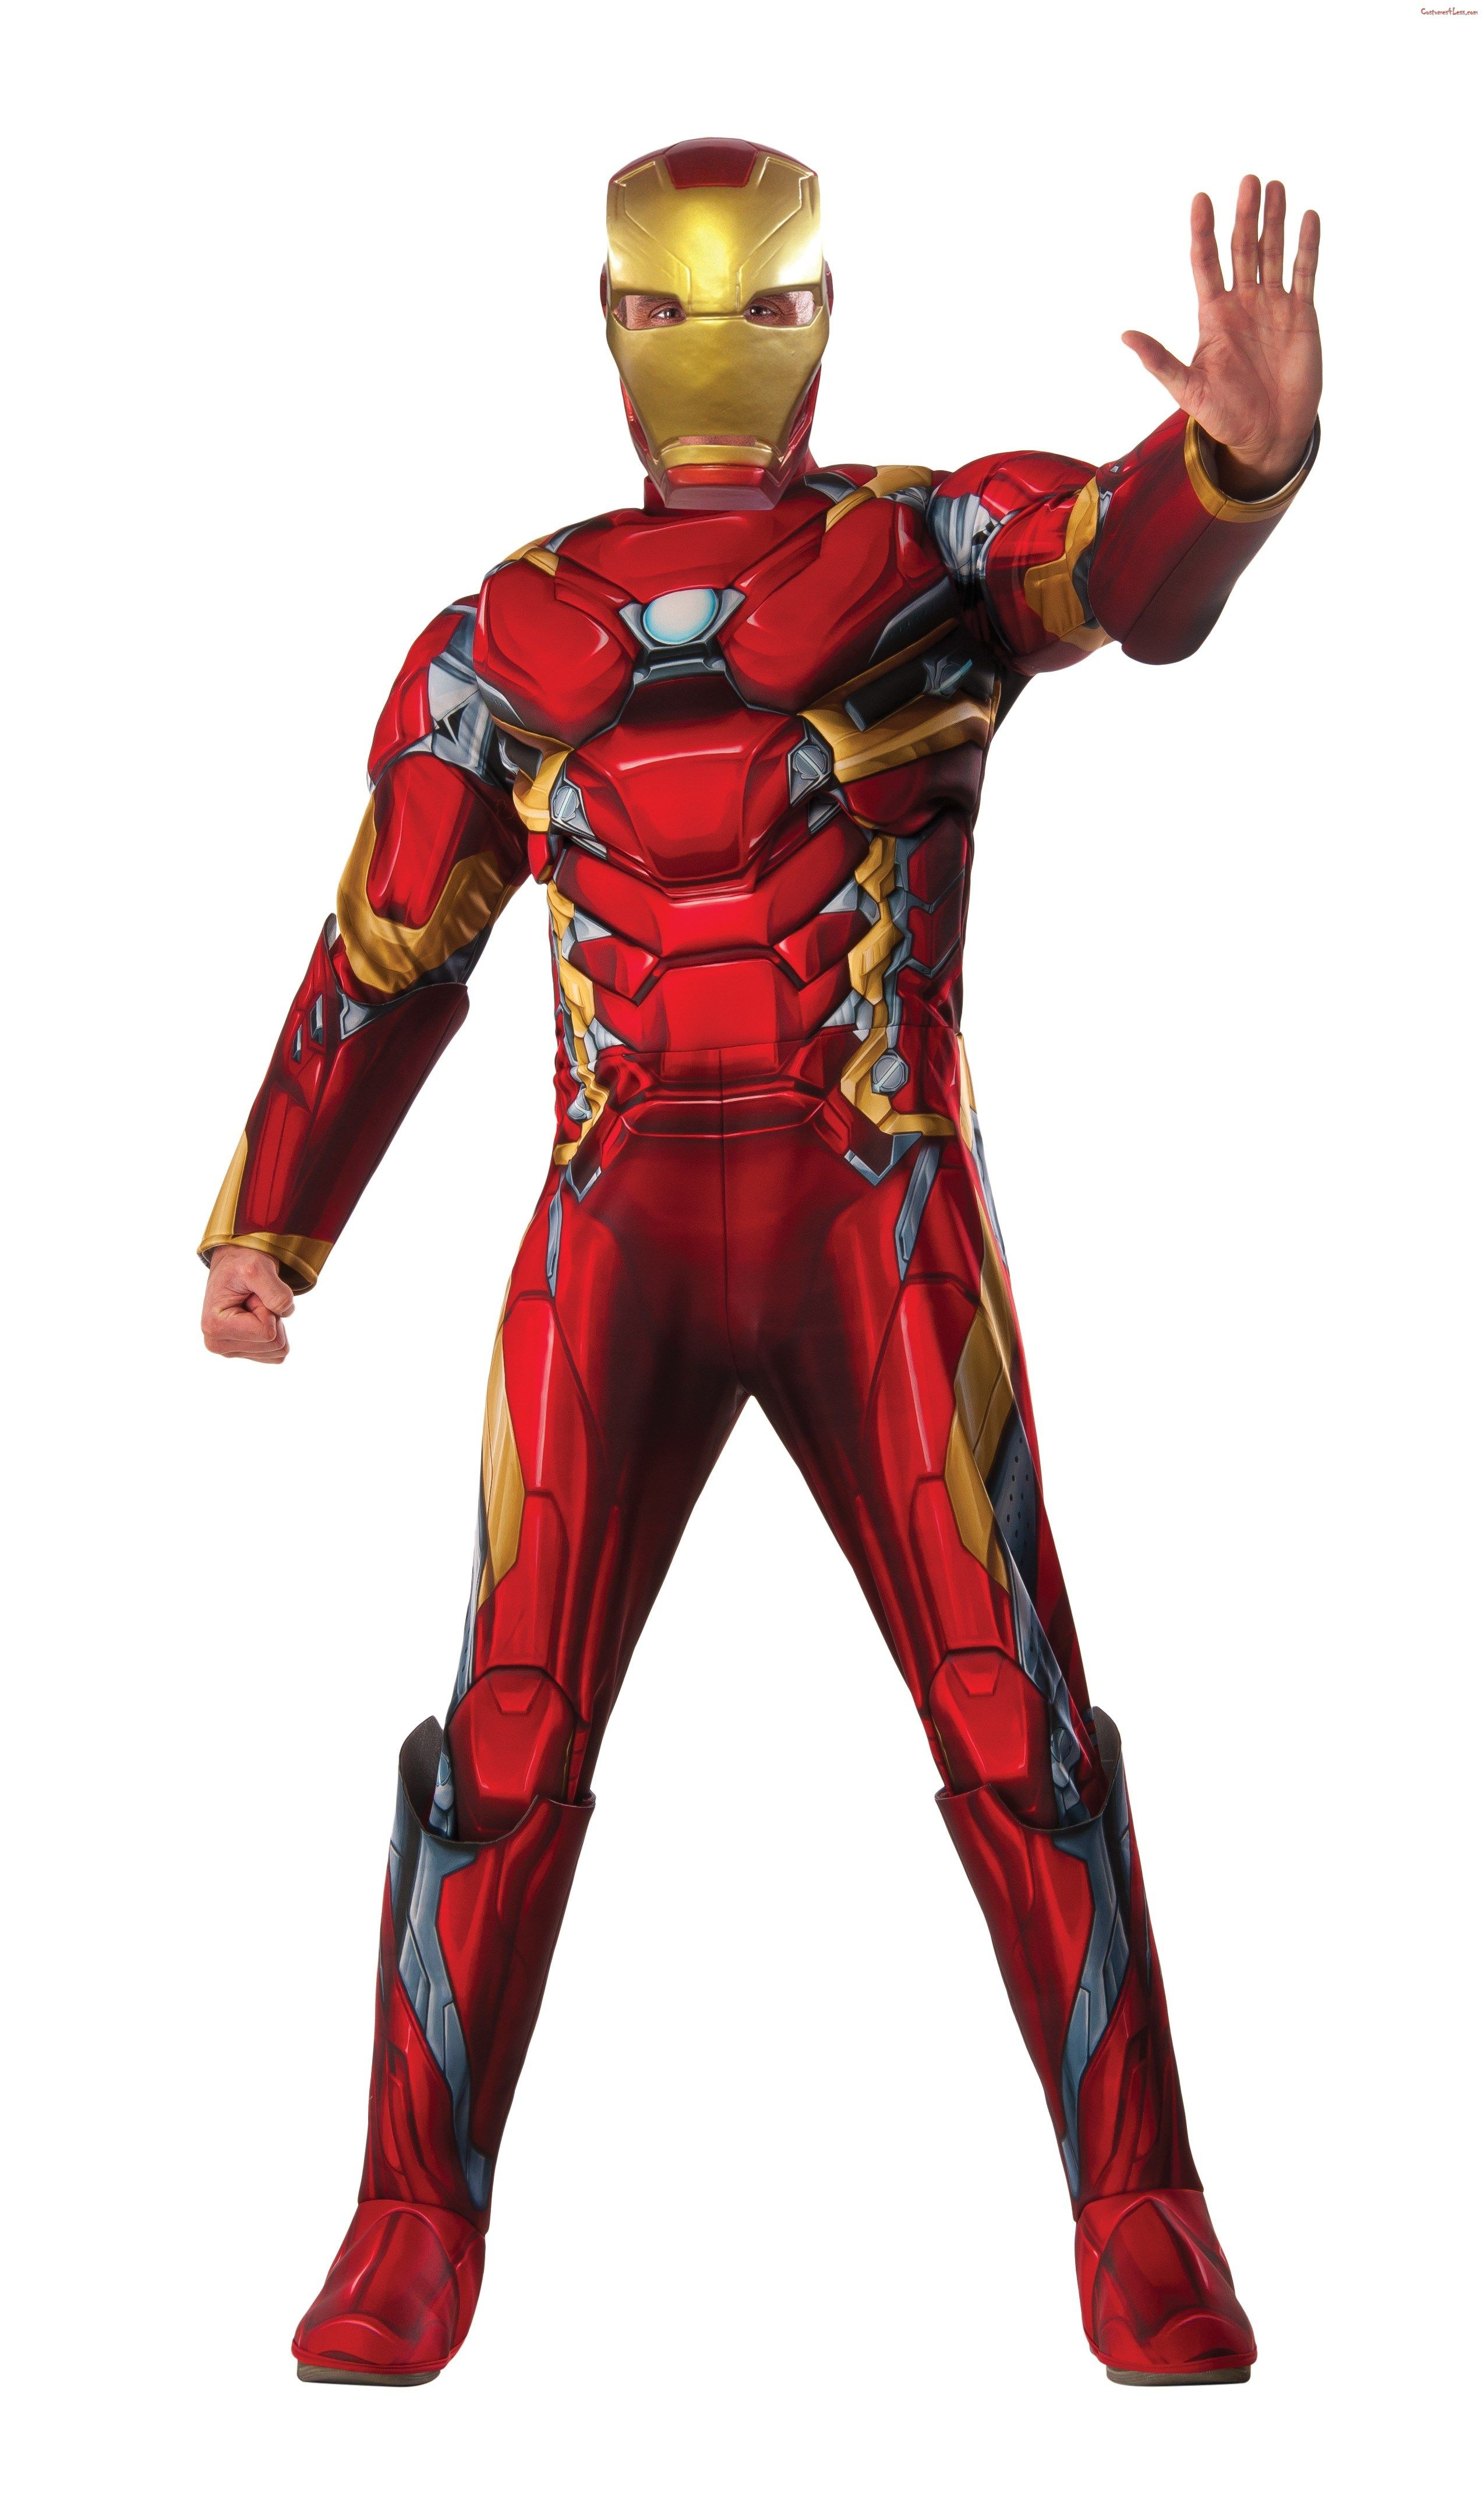 Captain America 3 Iron Man Adult Deluxe Costume Ad Ironman Costume Iron Man Halloween Costume Iron Man Dress Up